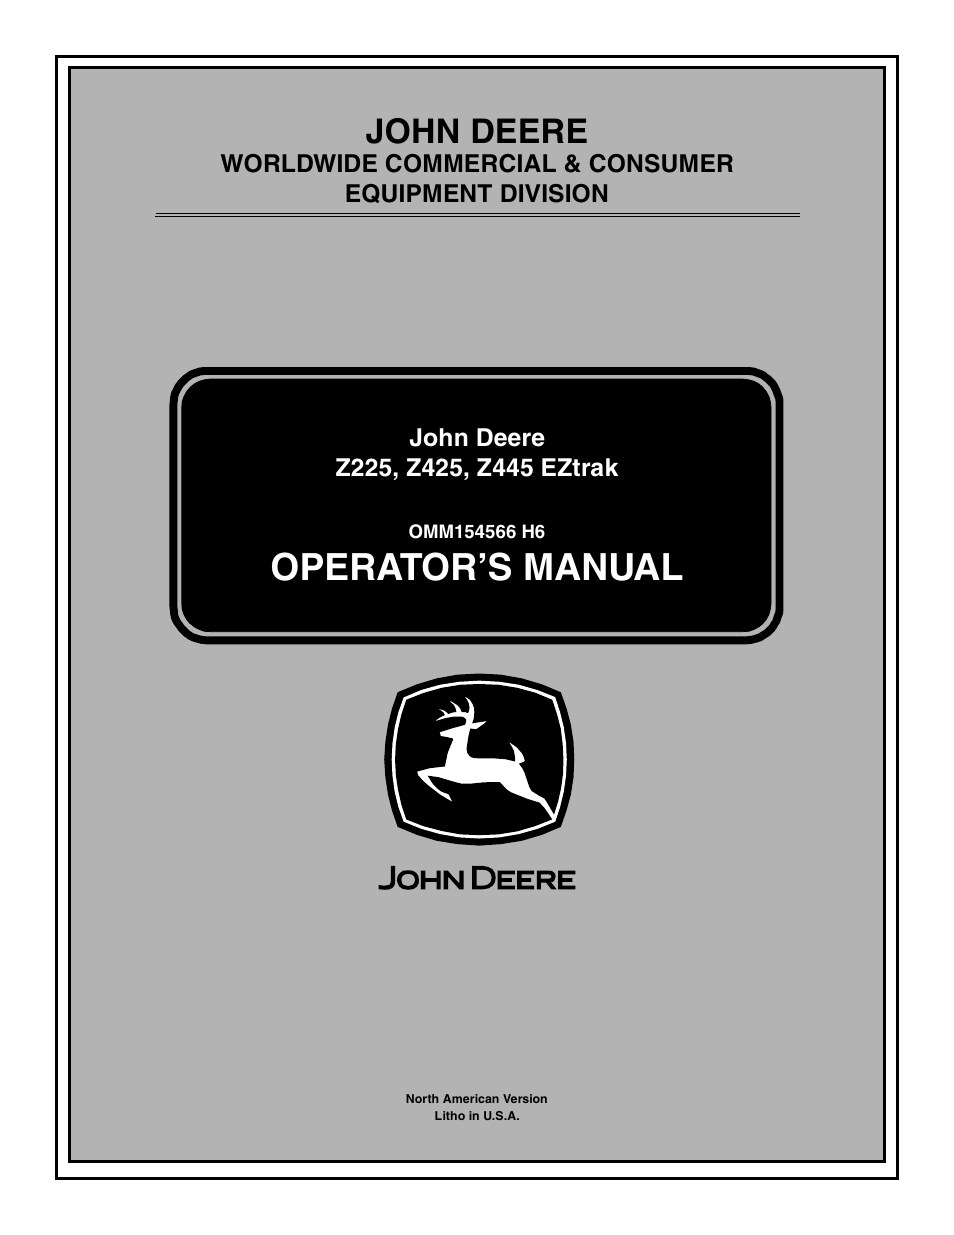 John Deere z425 User Manual | 48 pages | Also for: Z225, Z445 EZtrak